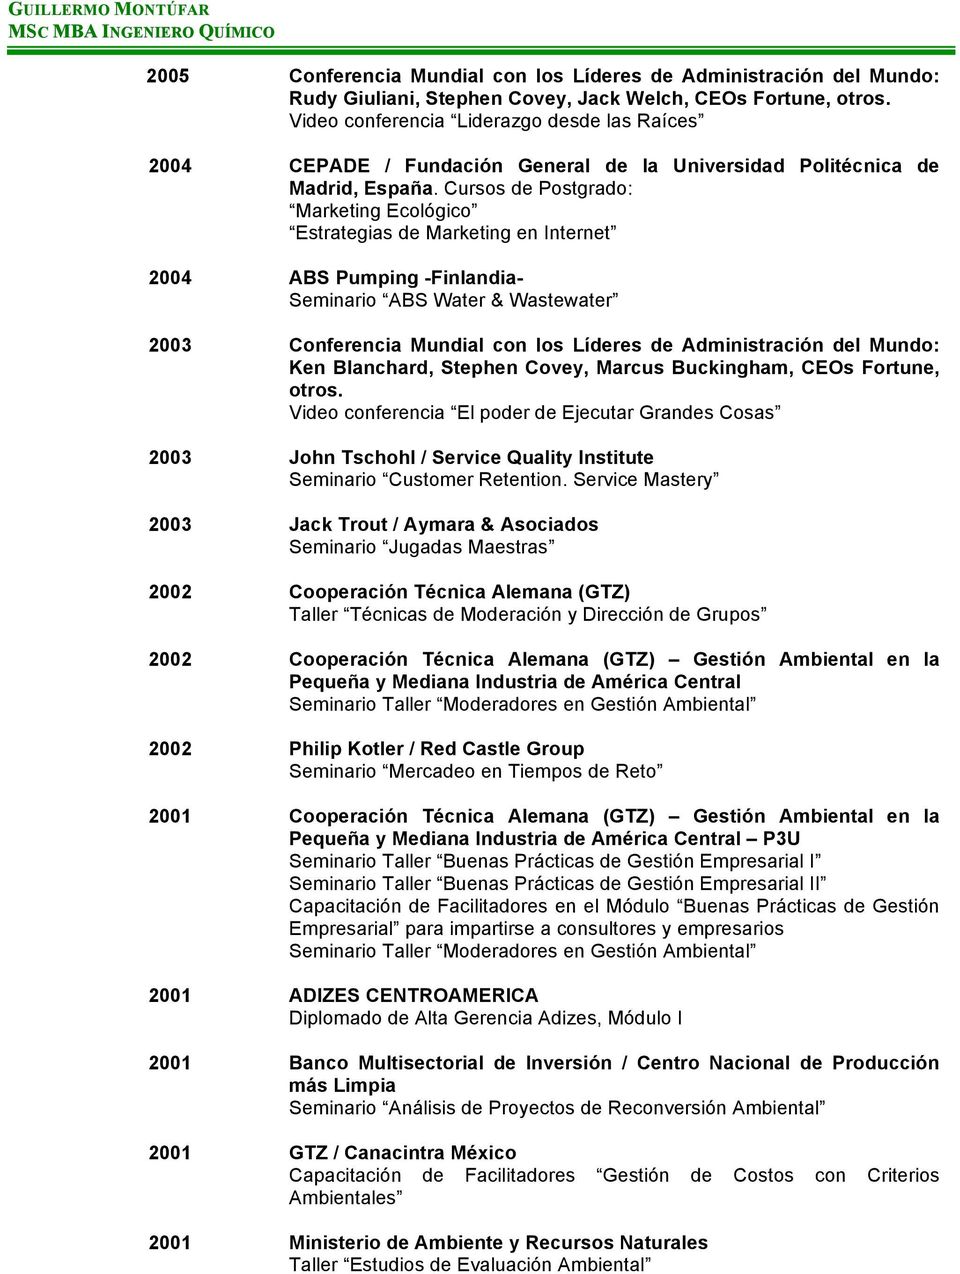 Cursos de Postgrado: Marketing Ecológico Estrategias de Marketing en Internet 2004 ABS Pumping -Finlandia- Seminario ABS Water & Wastewater 2003 Conferencia Mundial con los Líderes de Administración